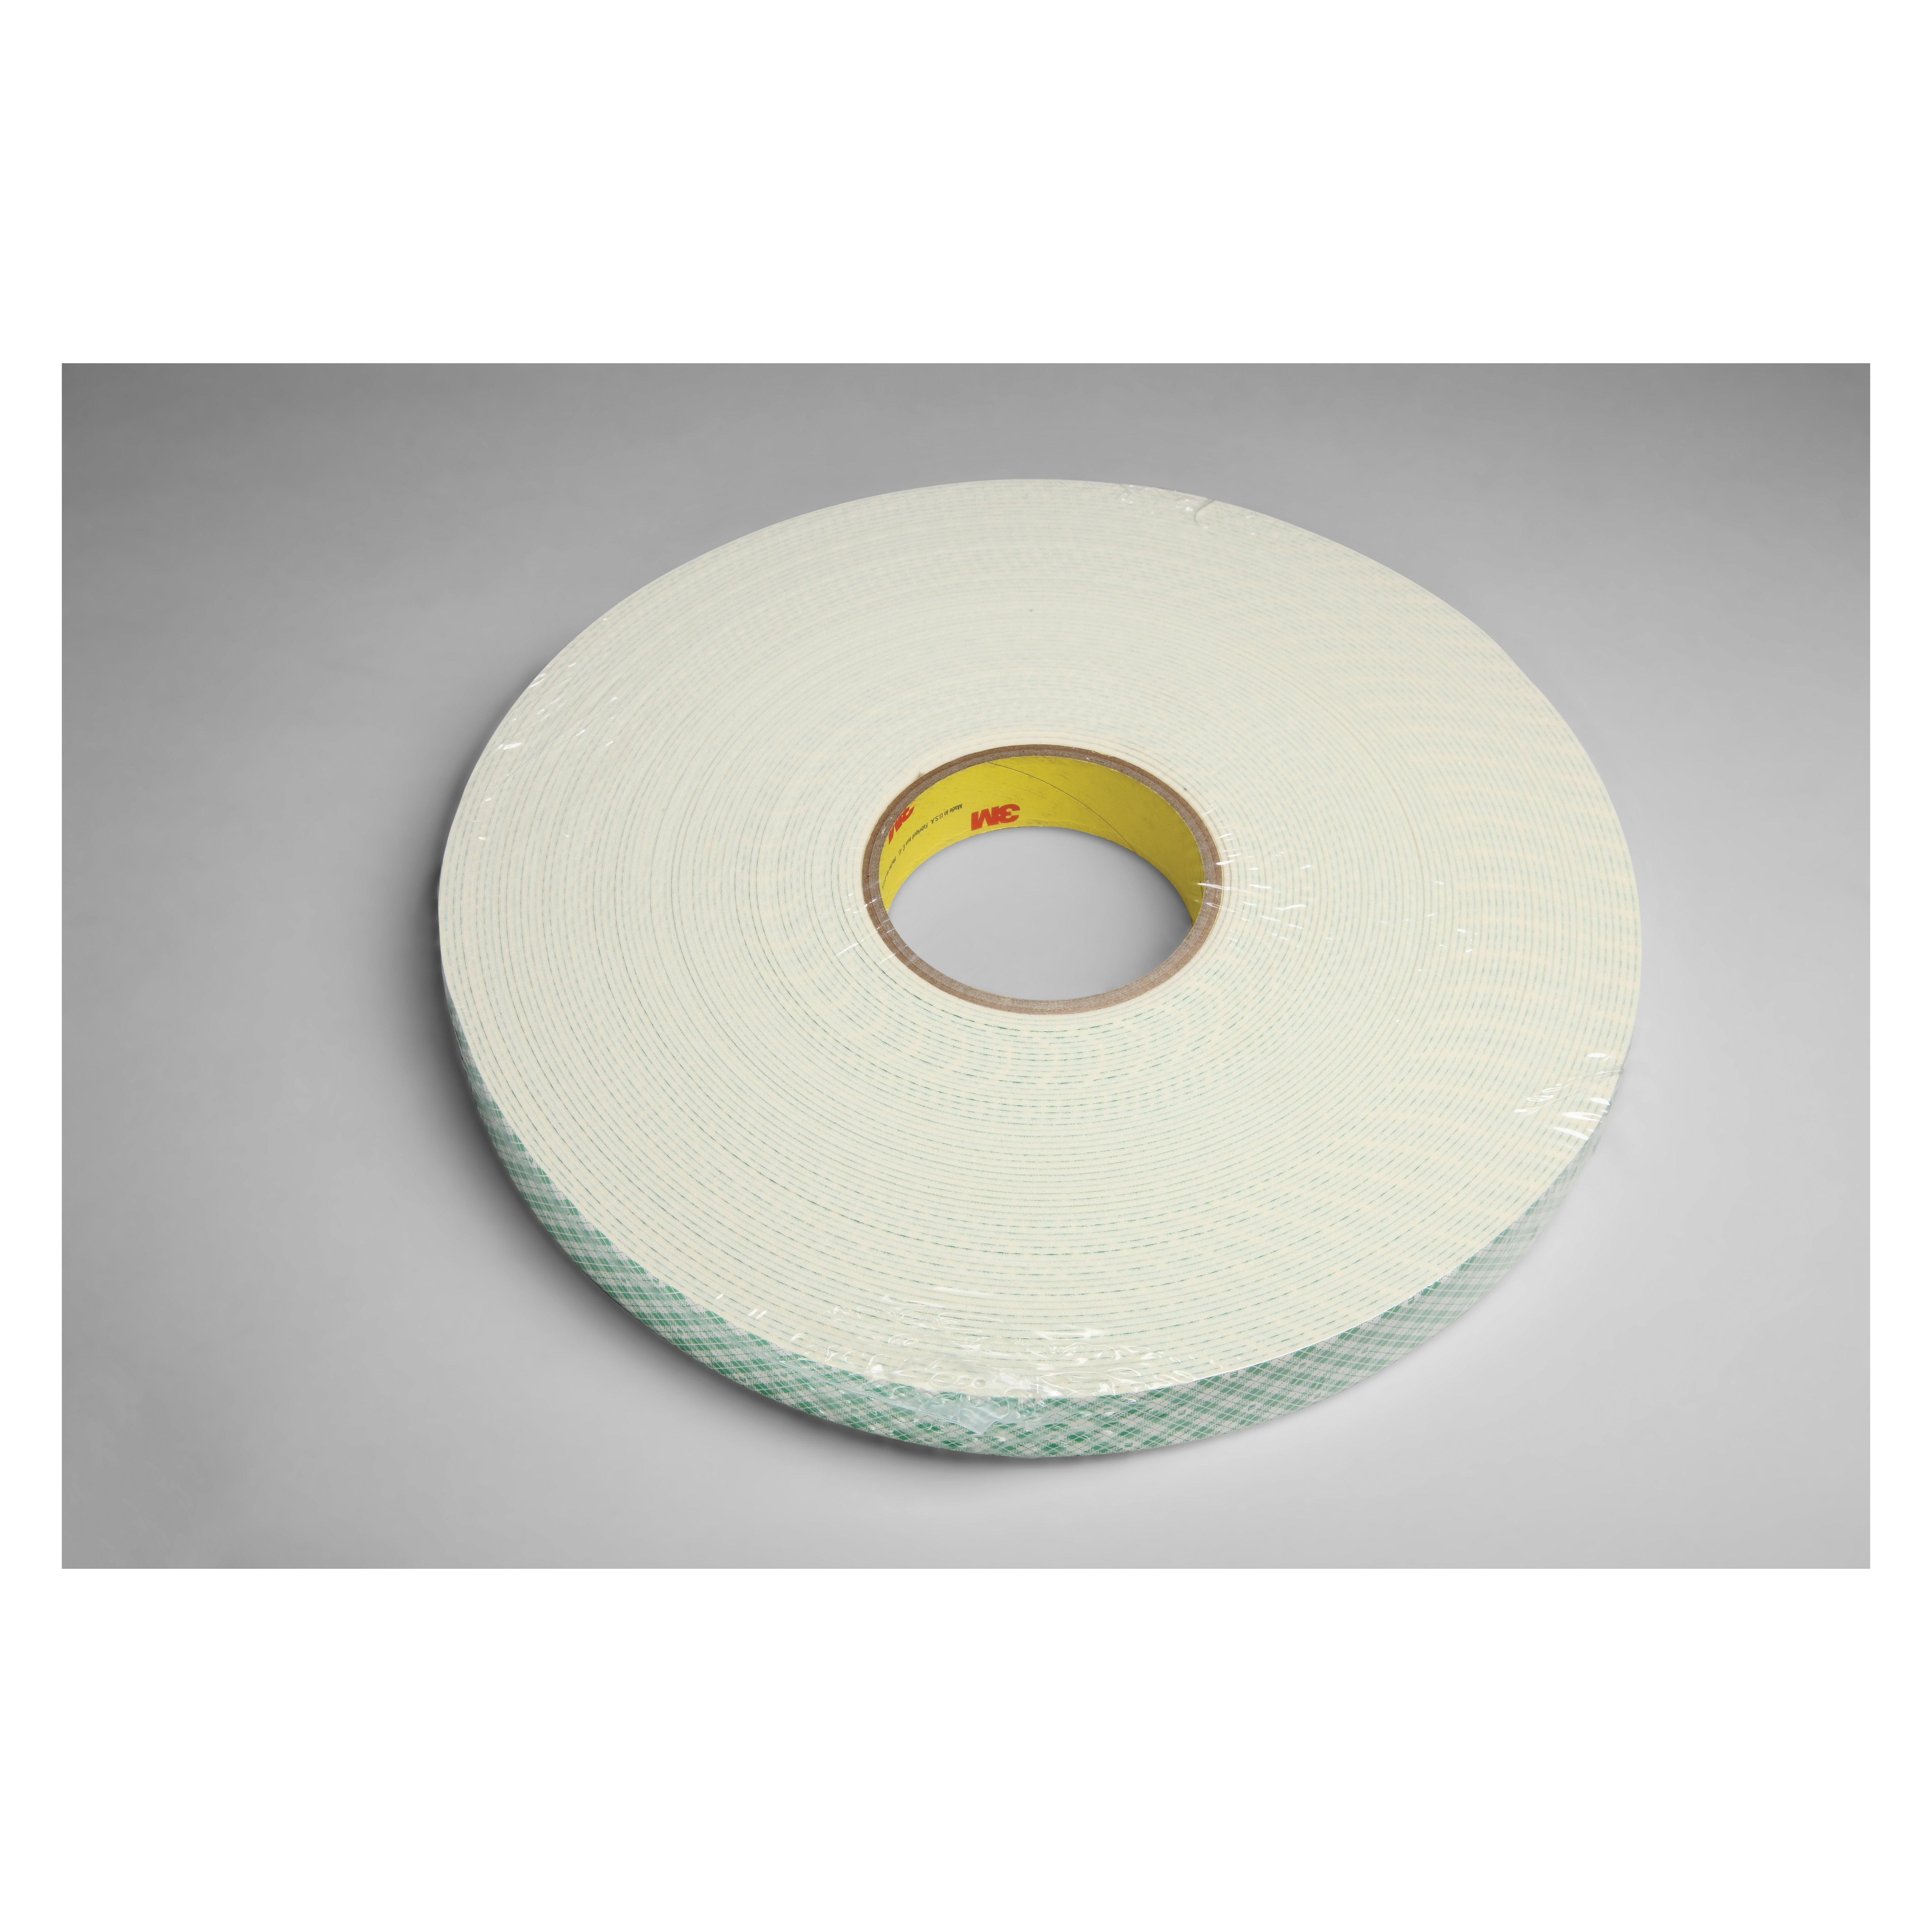 3M™ 021200-03398 Single Coated Foam Tape, 36 yd L x 1/4 in W, 62 mil THK, Acrylic Adhesive, Urethane Foam Backing, Natural